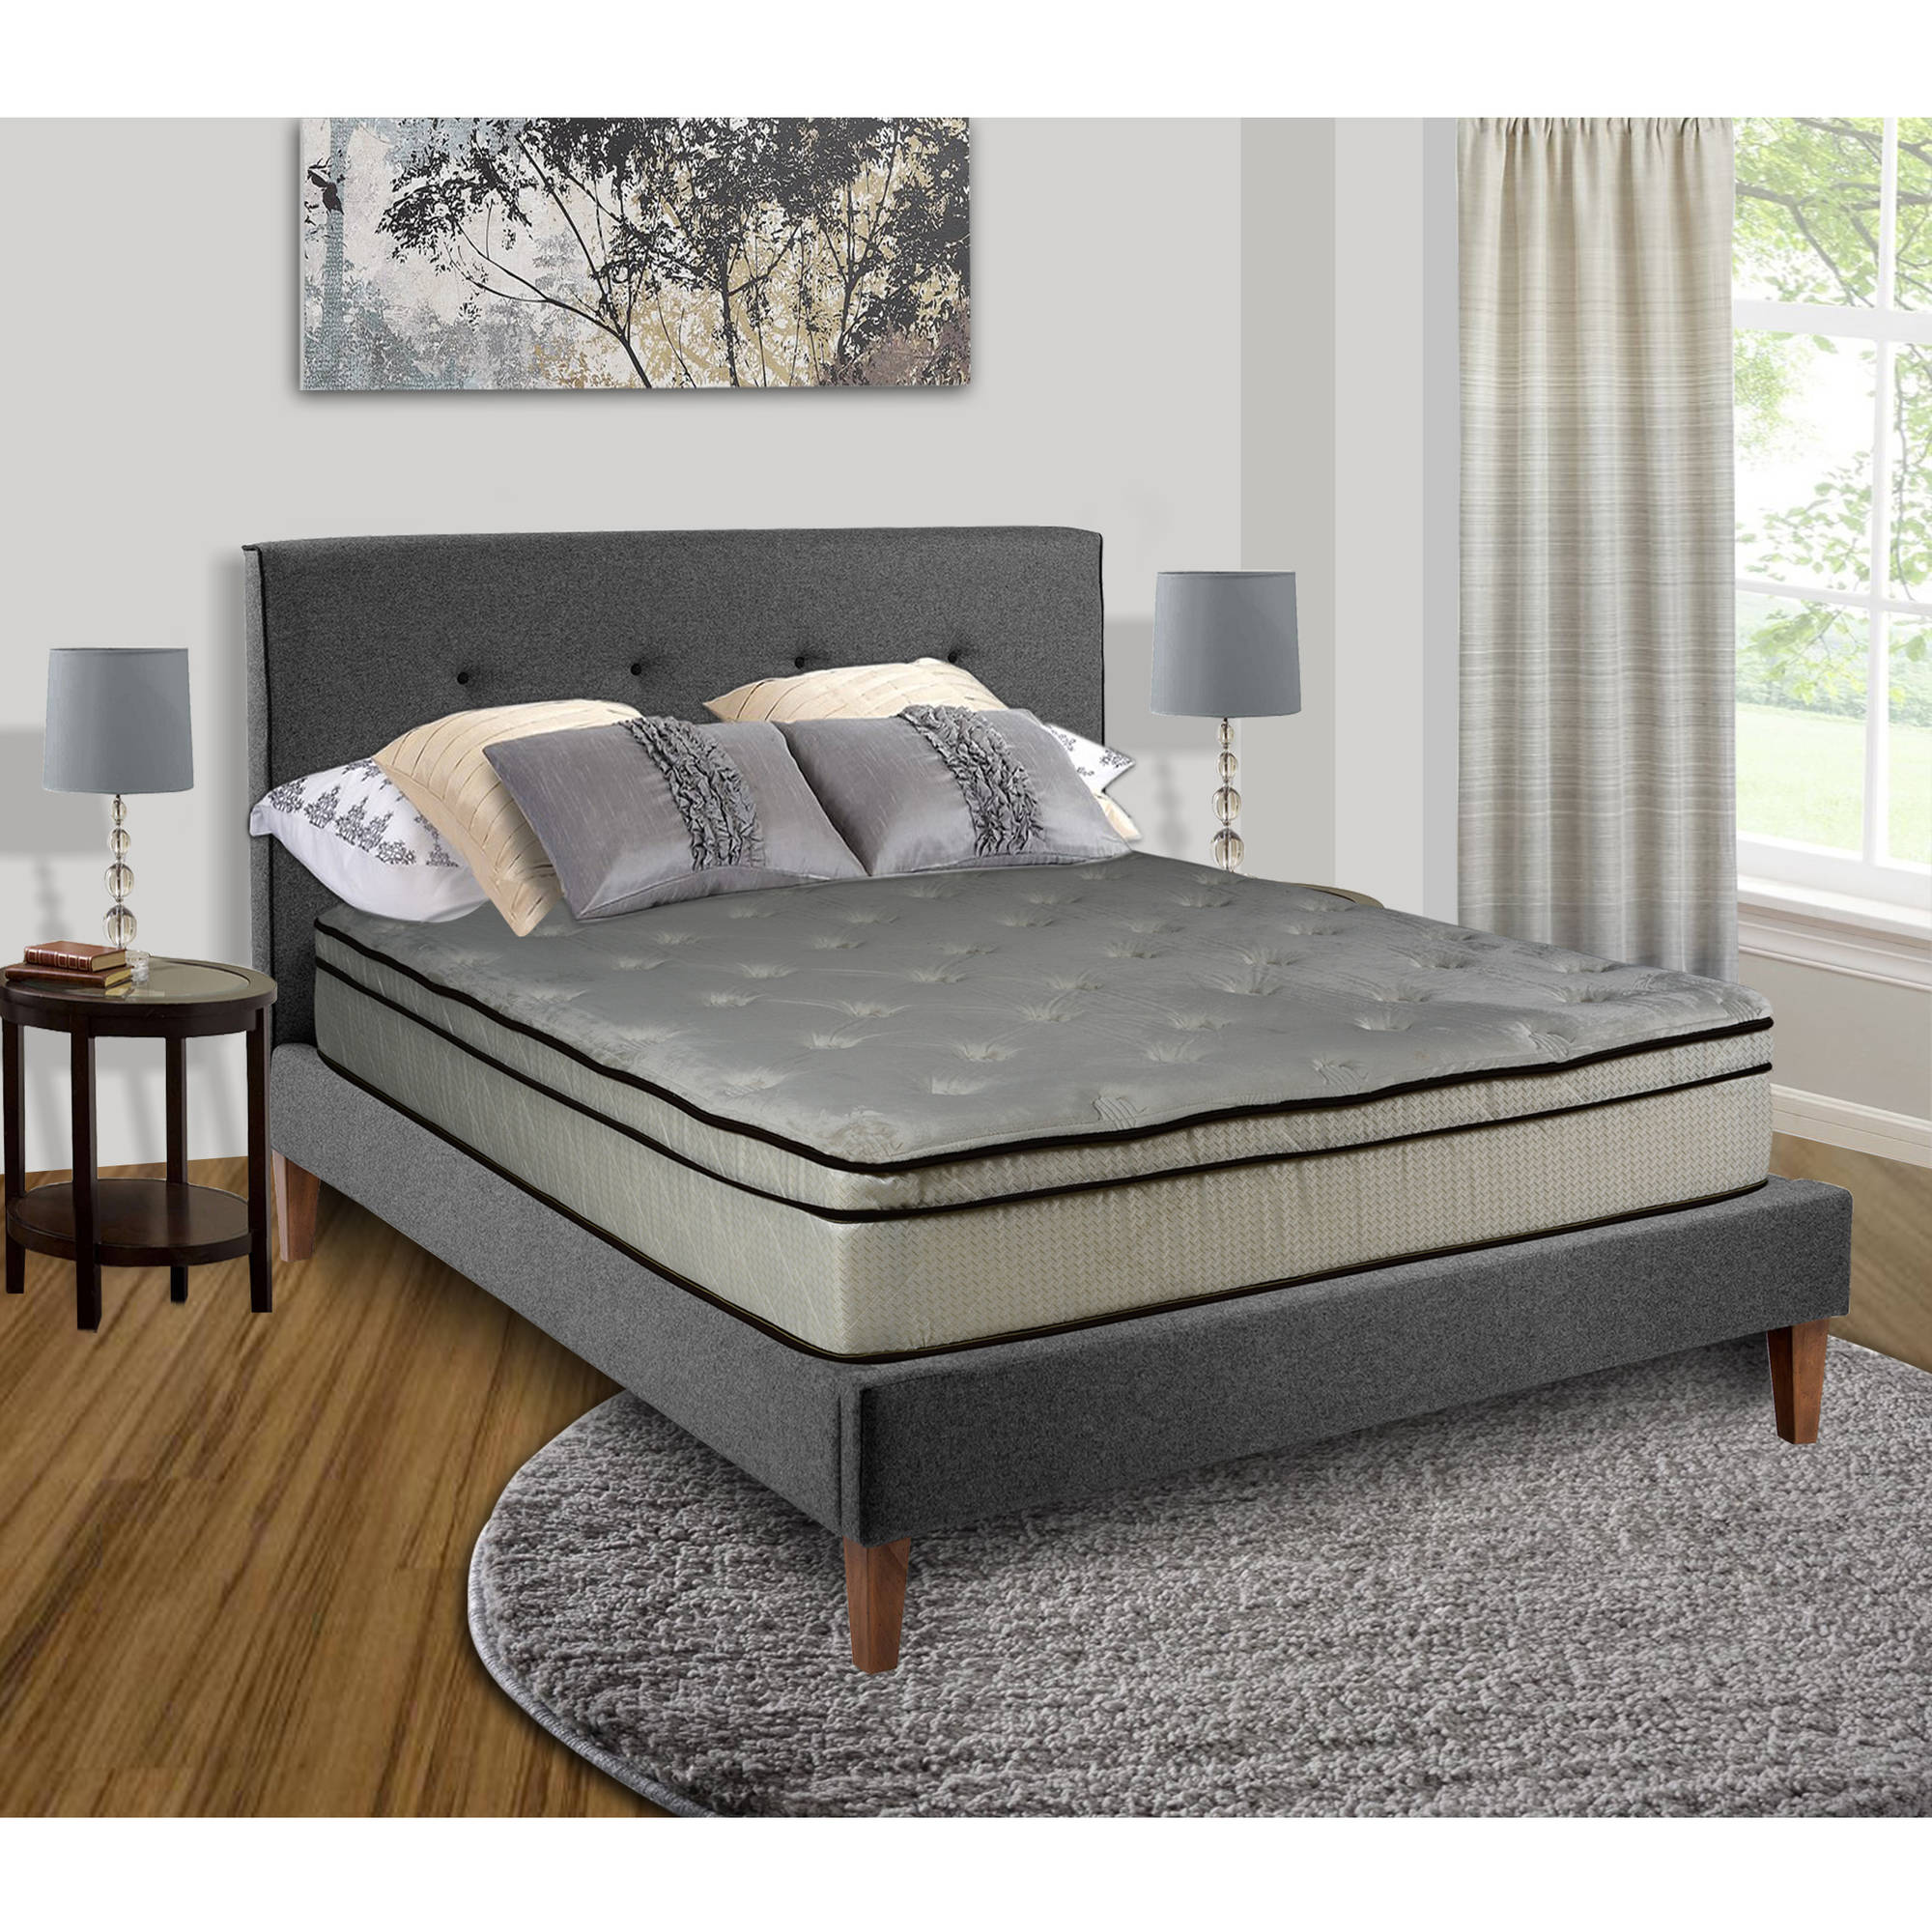 "Continental Sleep, Victoria 11"" Euro Top Innerspring Mattress, Cozy Teddy Bear Fabric, Twin Sizes"